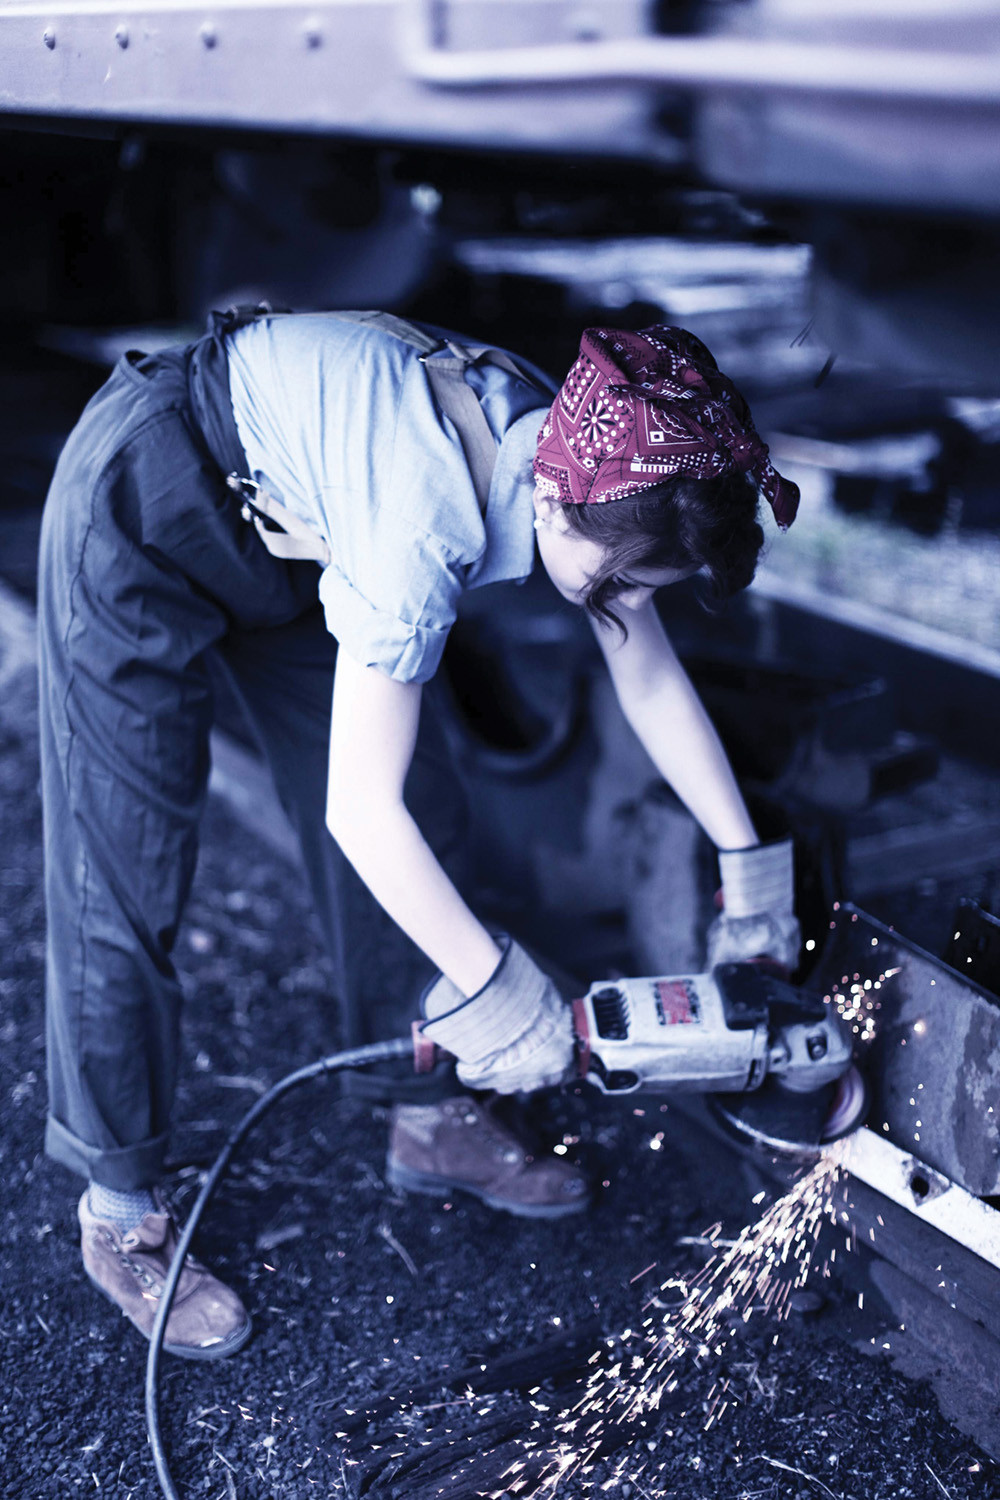 young woman in 1940's mens work clothes do rag and gloves grinds down metal on the train with grinder